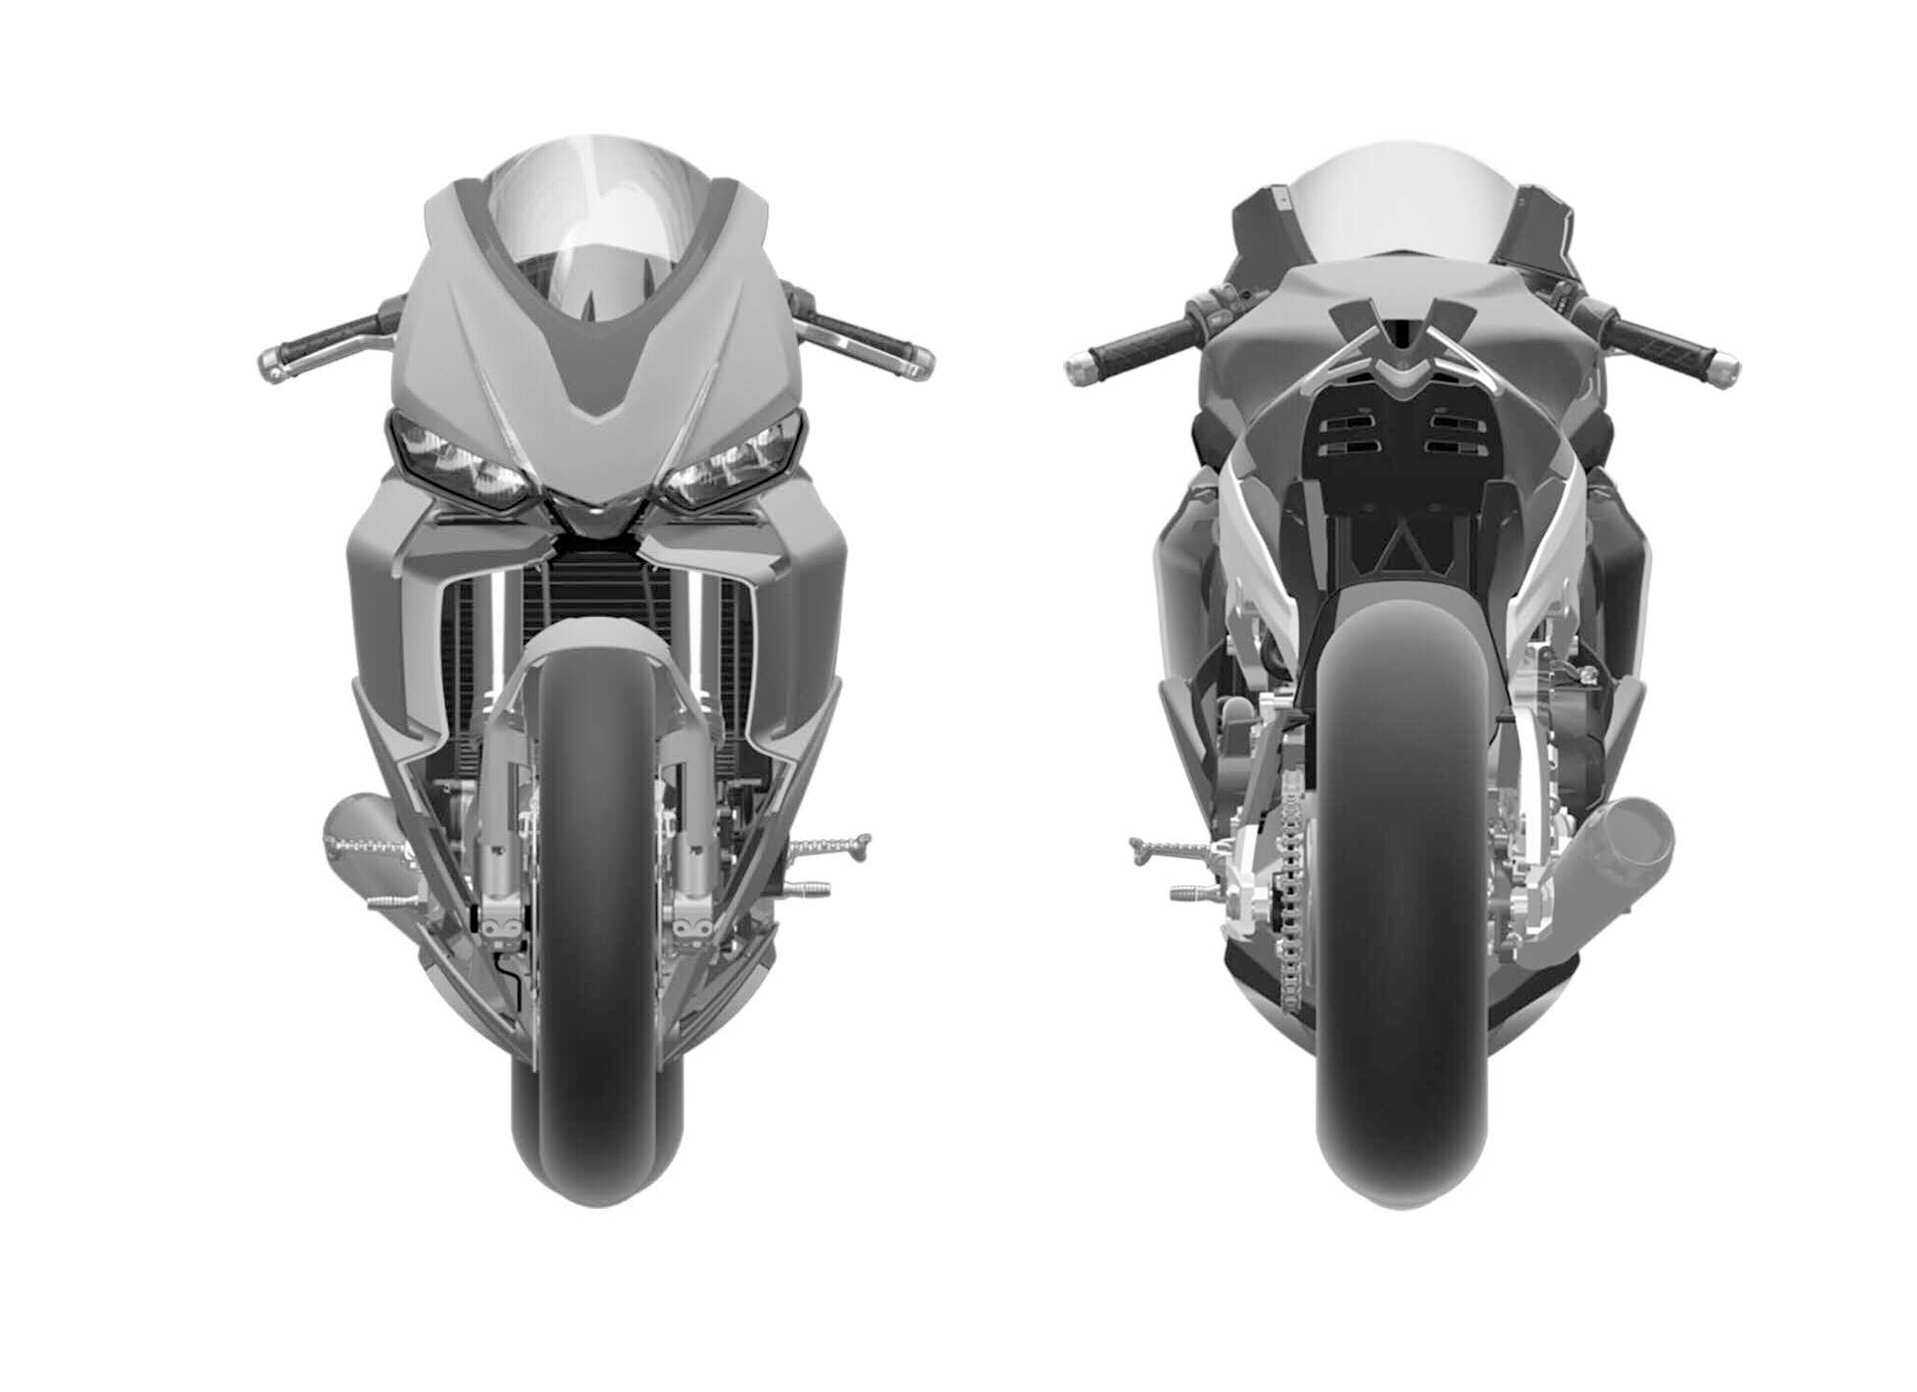 053019 2020 aprilia rs660 concept design front and rear txt 3